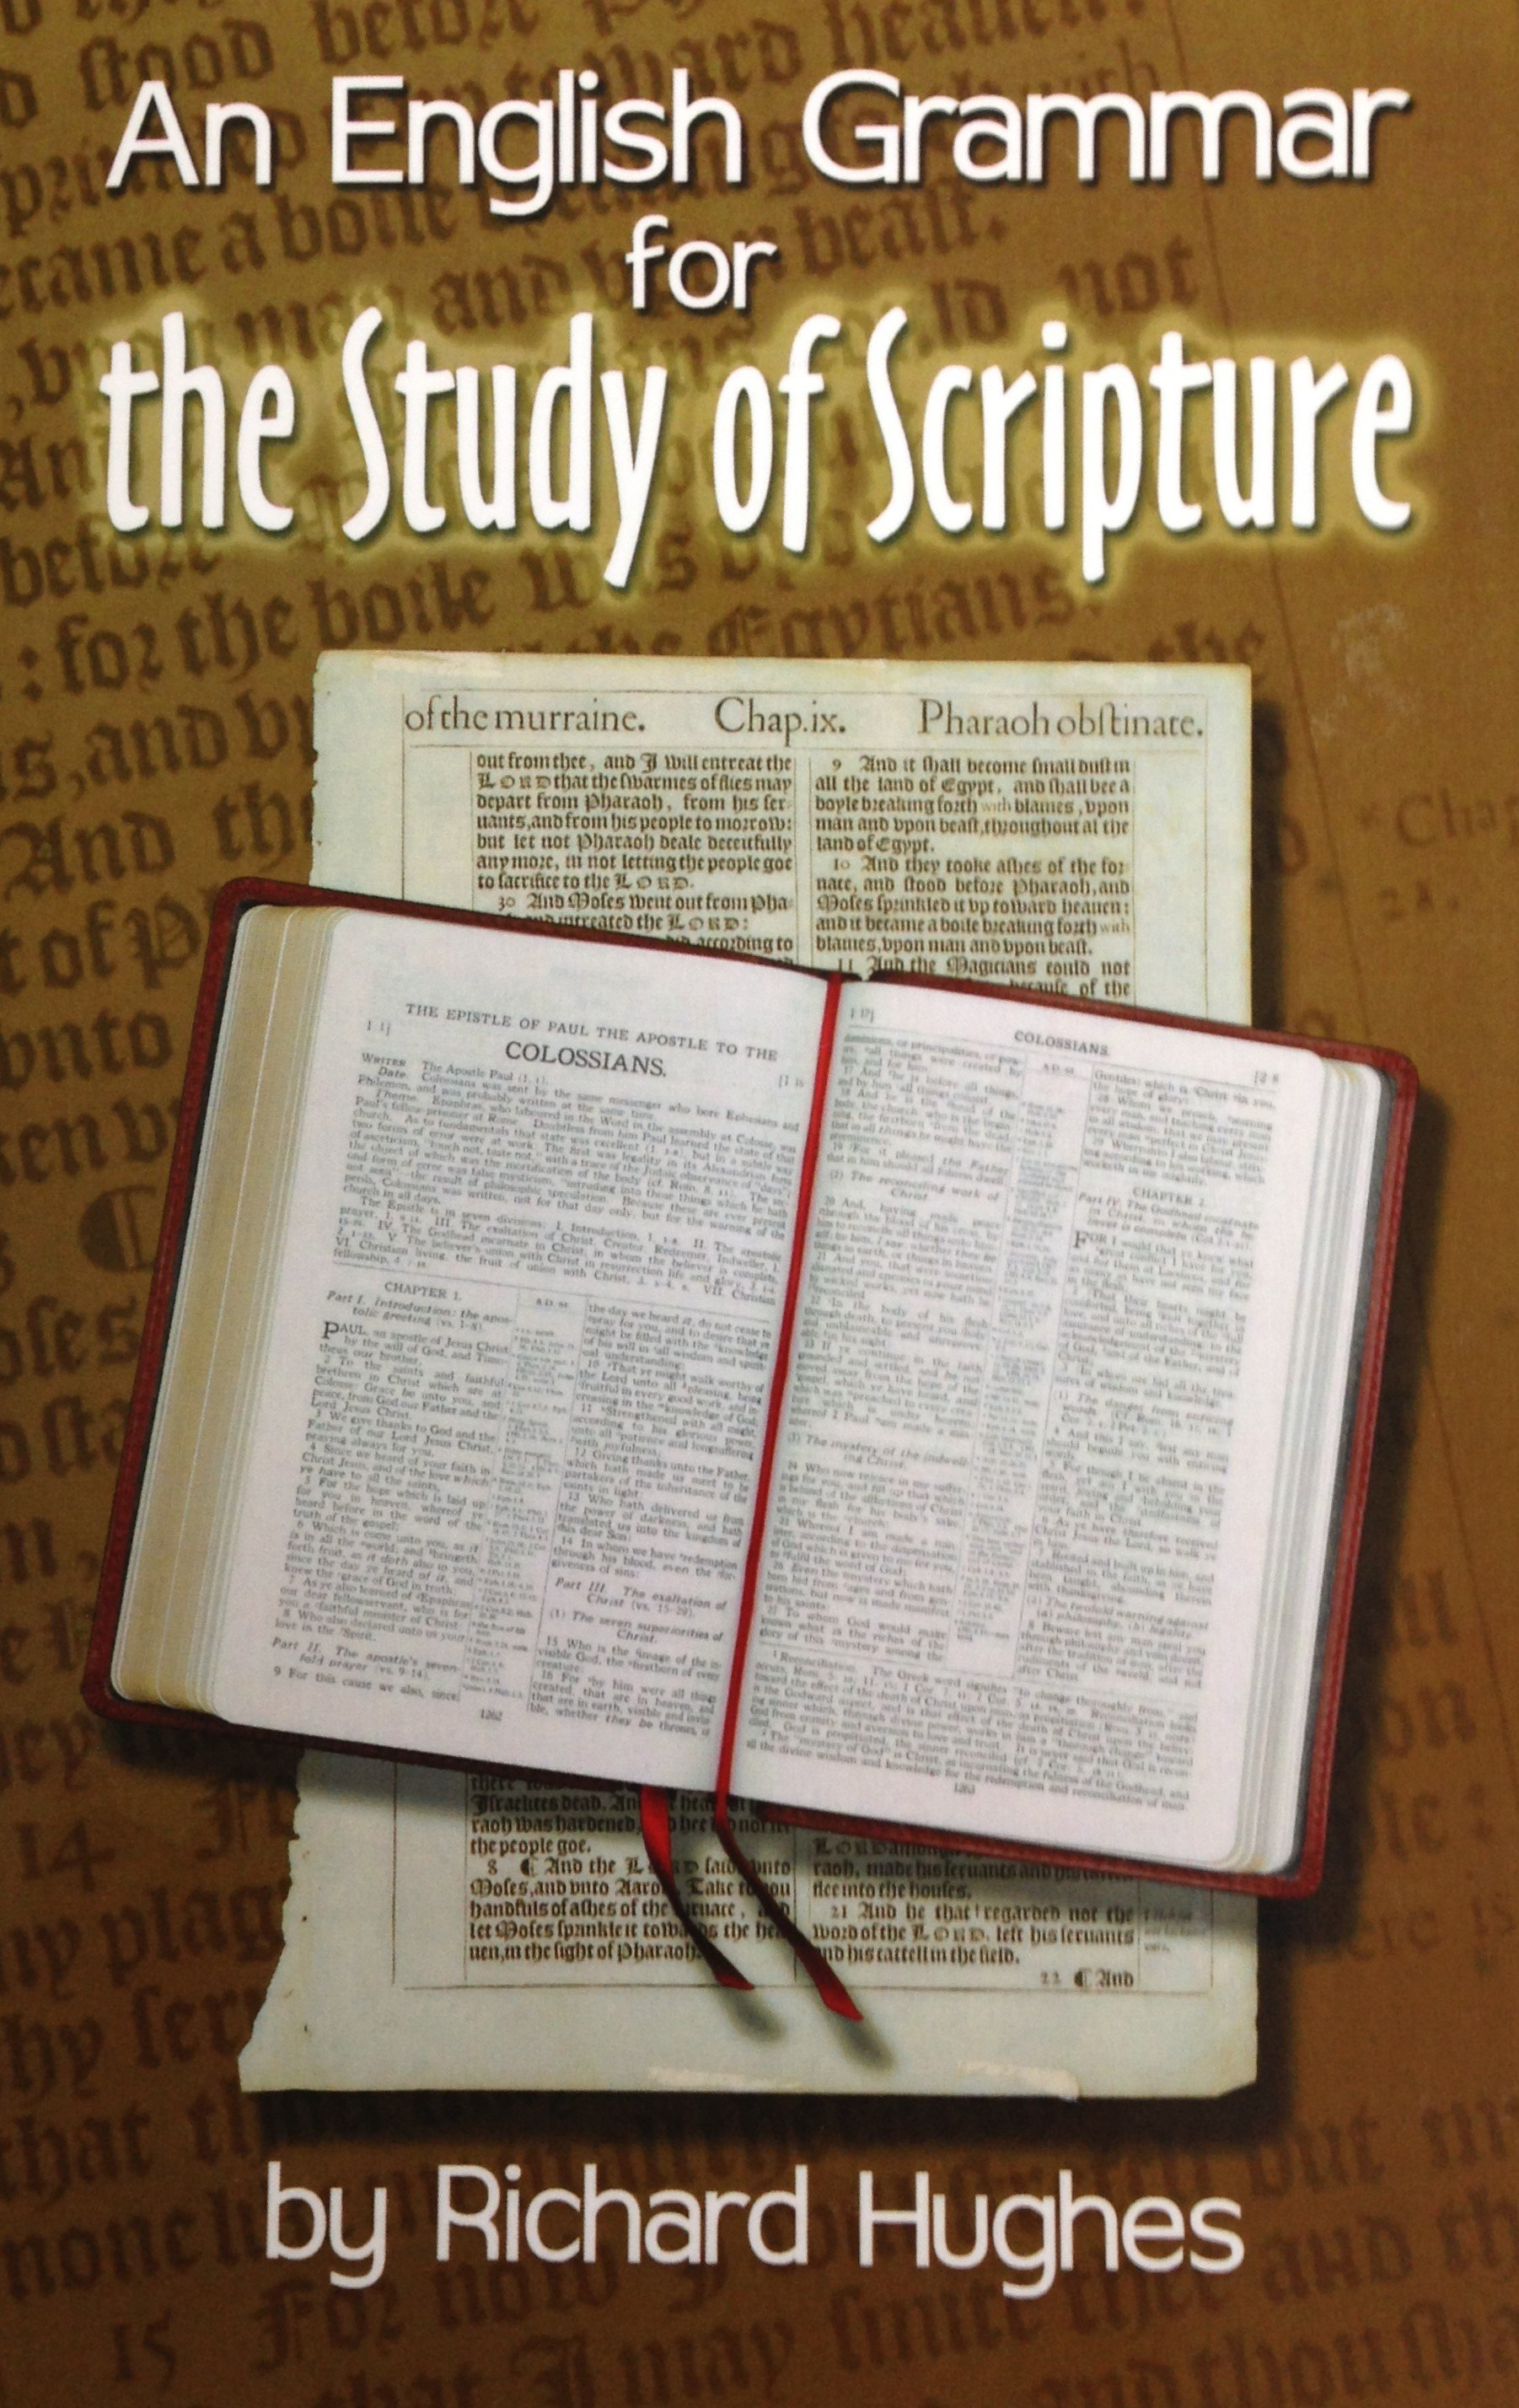 An English Grammar for the Study of Scripture by Richard Hughes 00063